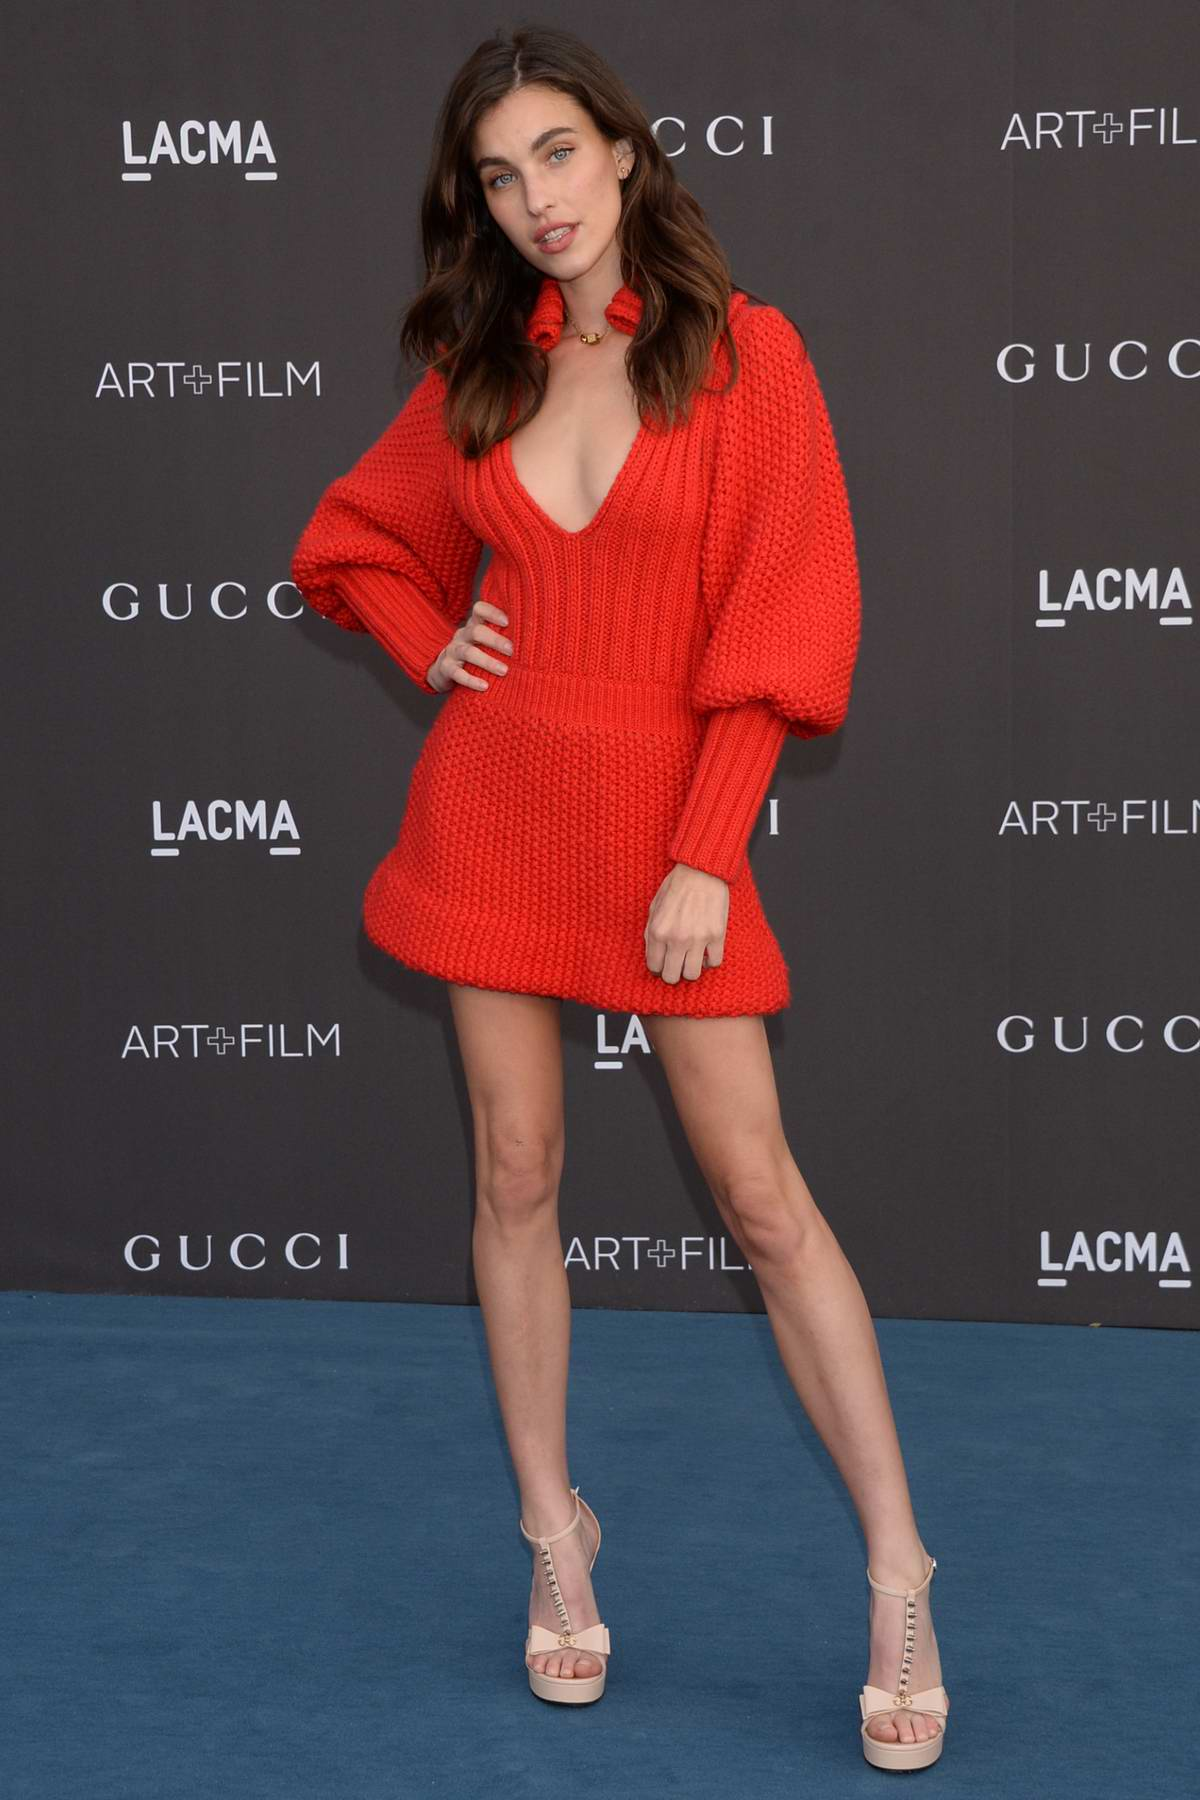 Rainey Qualley attends the 2019 LACMA 2019 Art + Film Gala in Los Angeles